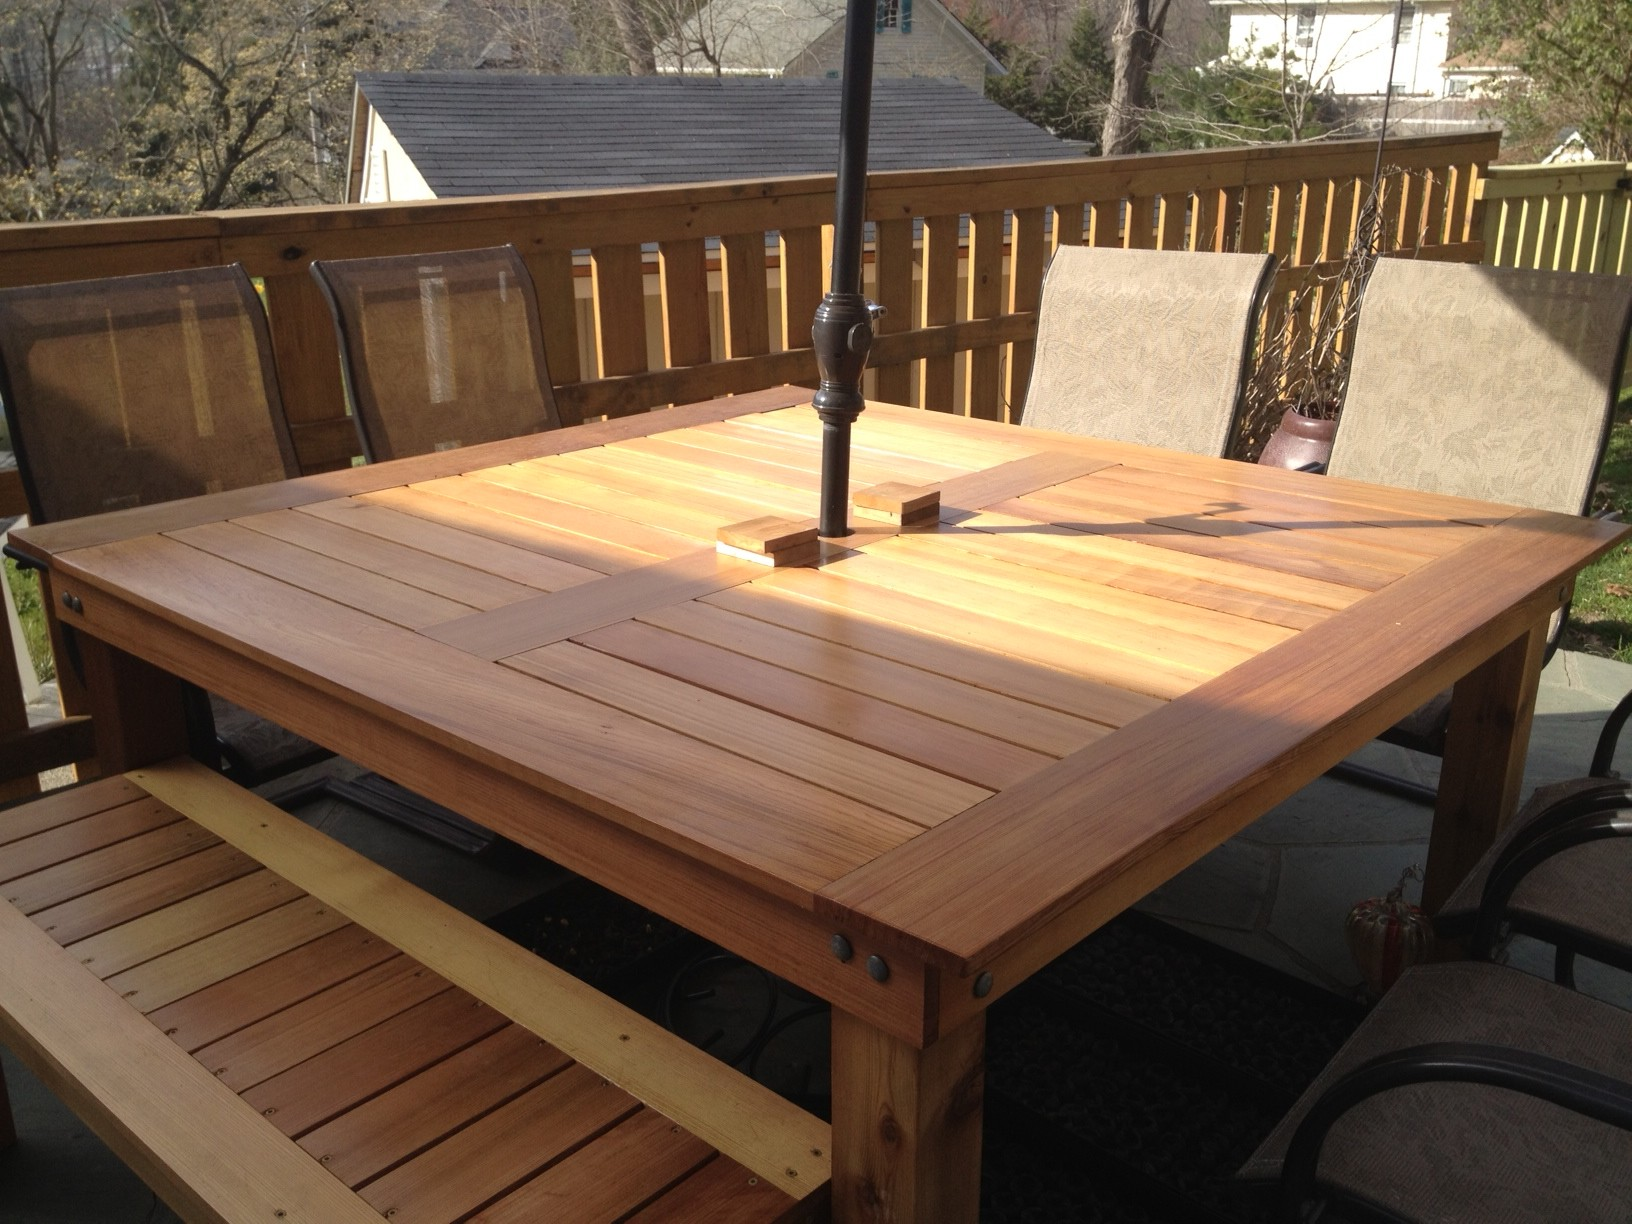 Strange Simple Square Cedar Outdoor Dining Table Ana White Interior Design Ideas Inesswwsoteloinfo